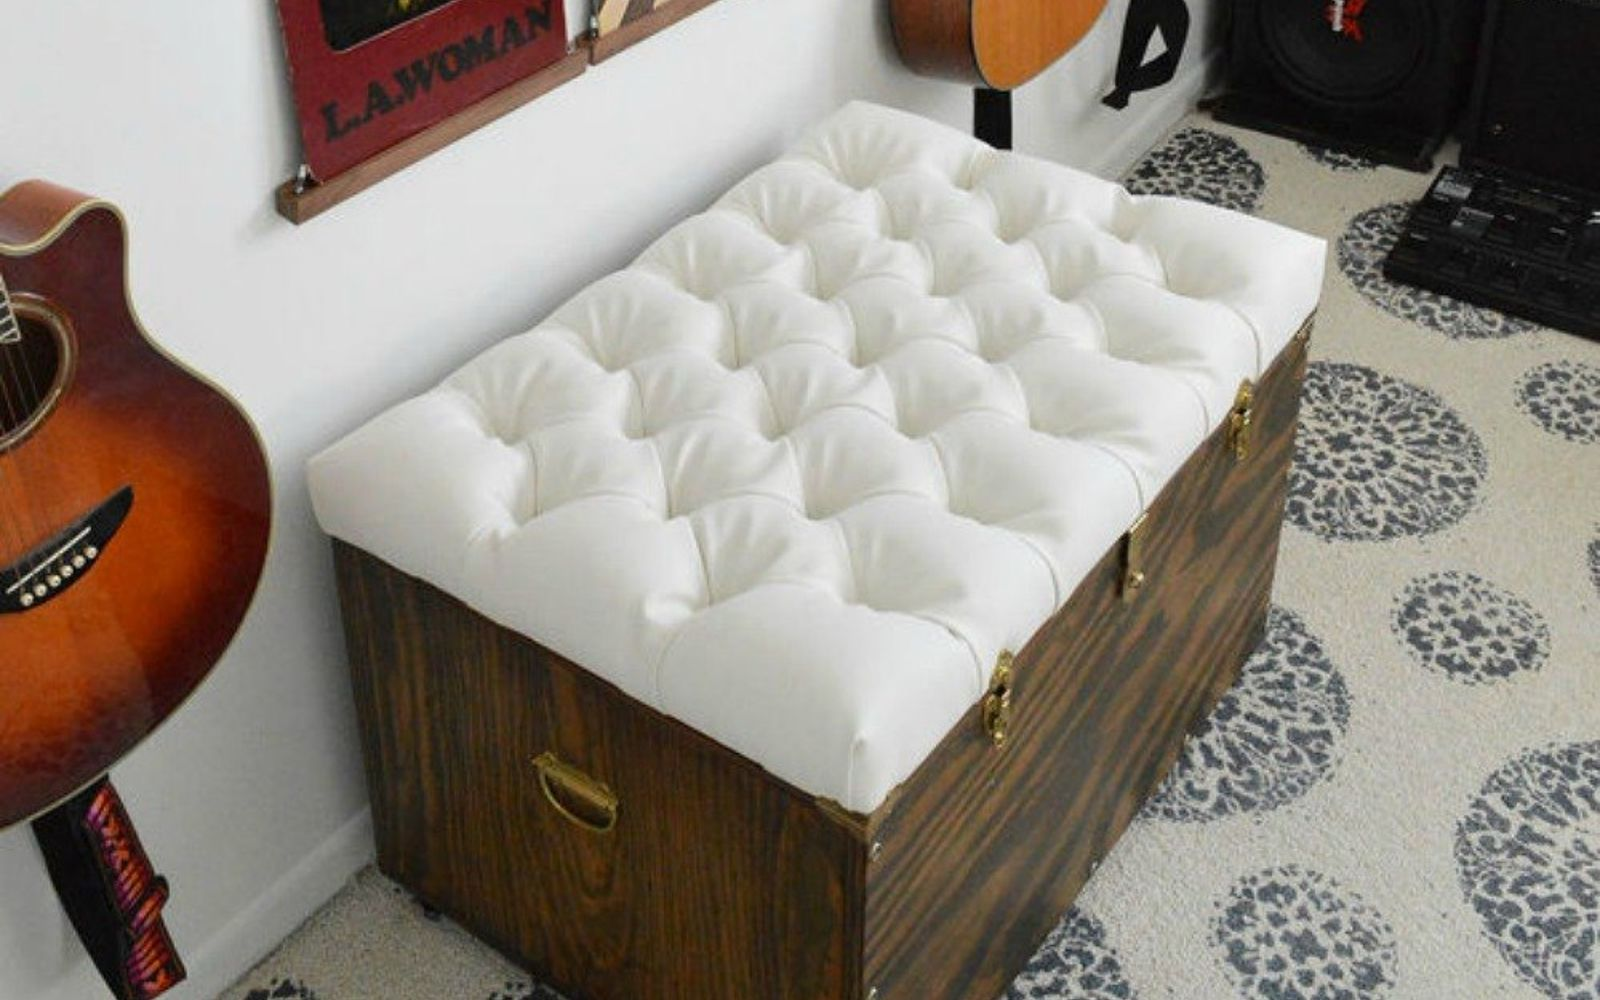 s 15 quick and easy gift ideas using buttons, Pin them for a luxurious tufted cushion